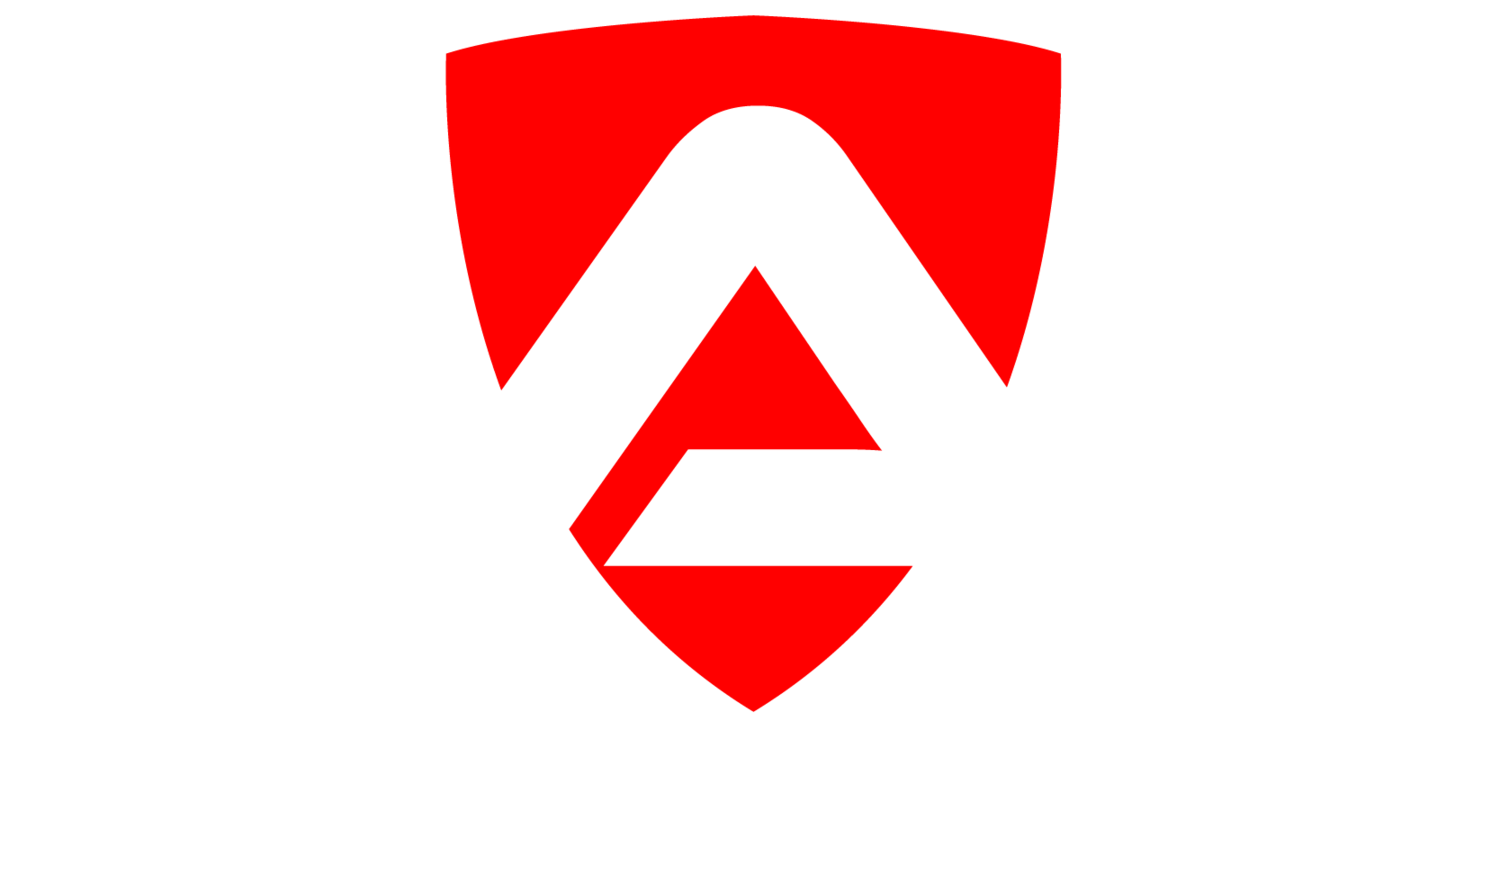 BICYCLE ARMOR